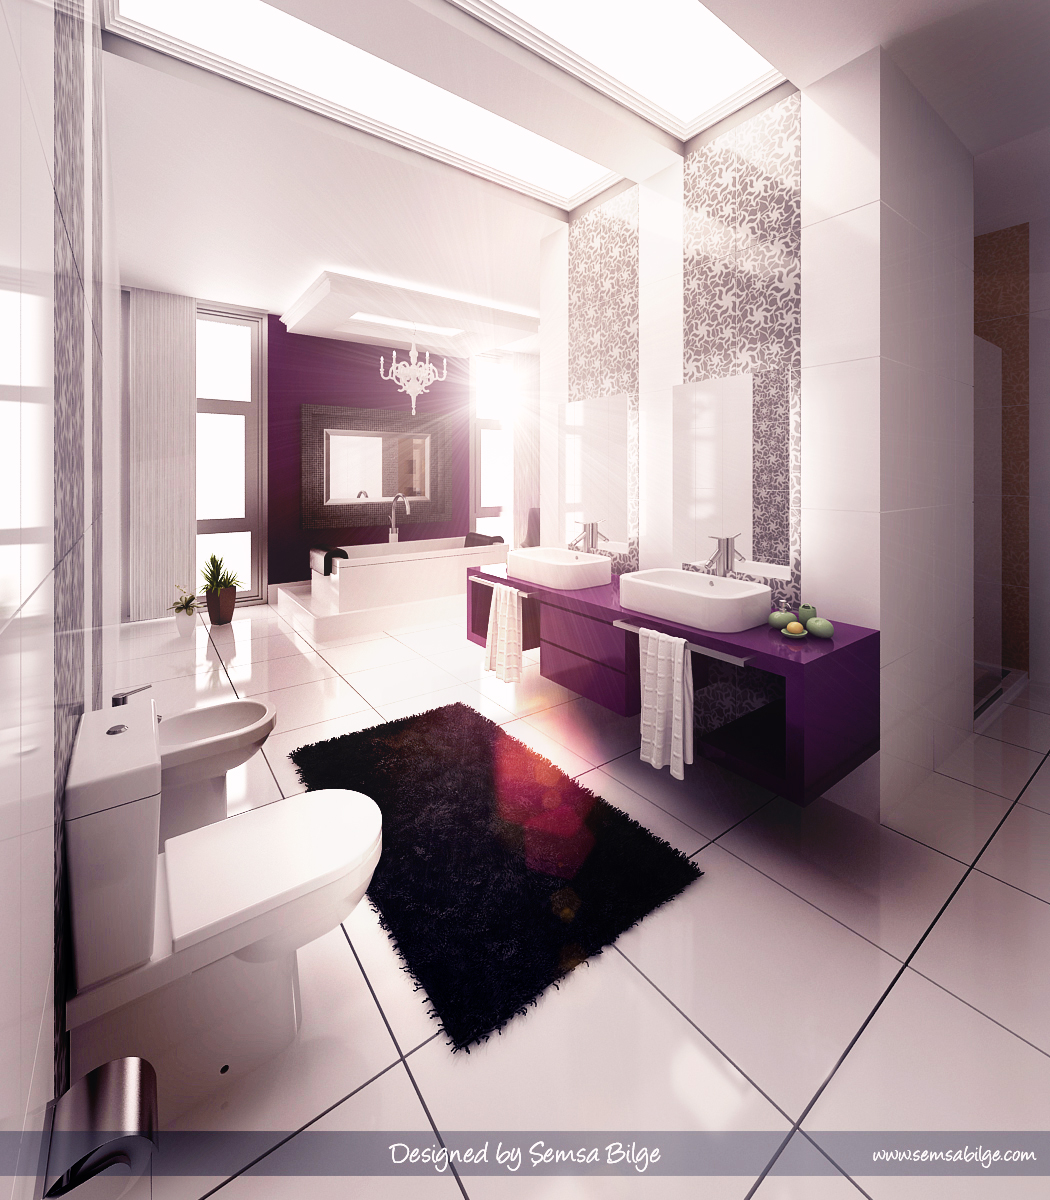 Beautiful bathroom designs ideas interior design for Bathroom design ideas